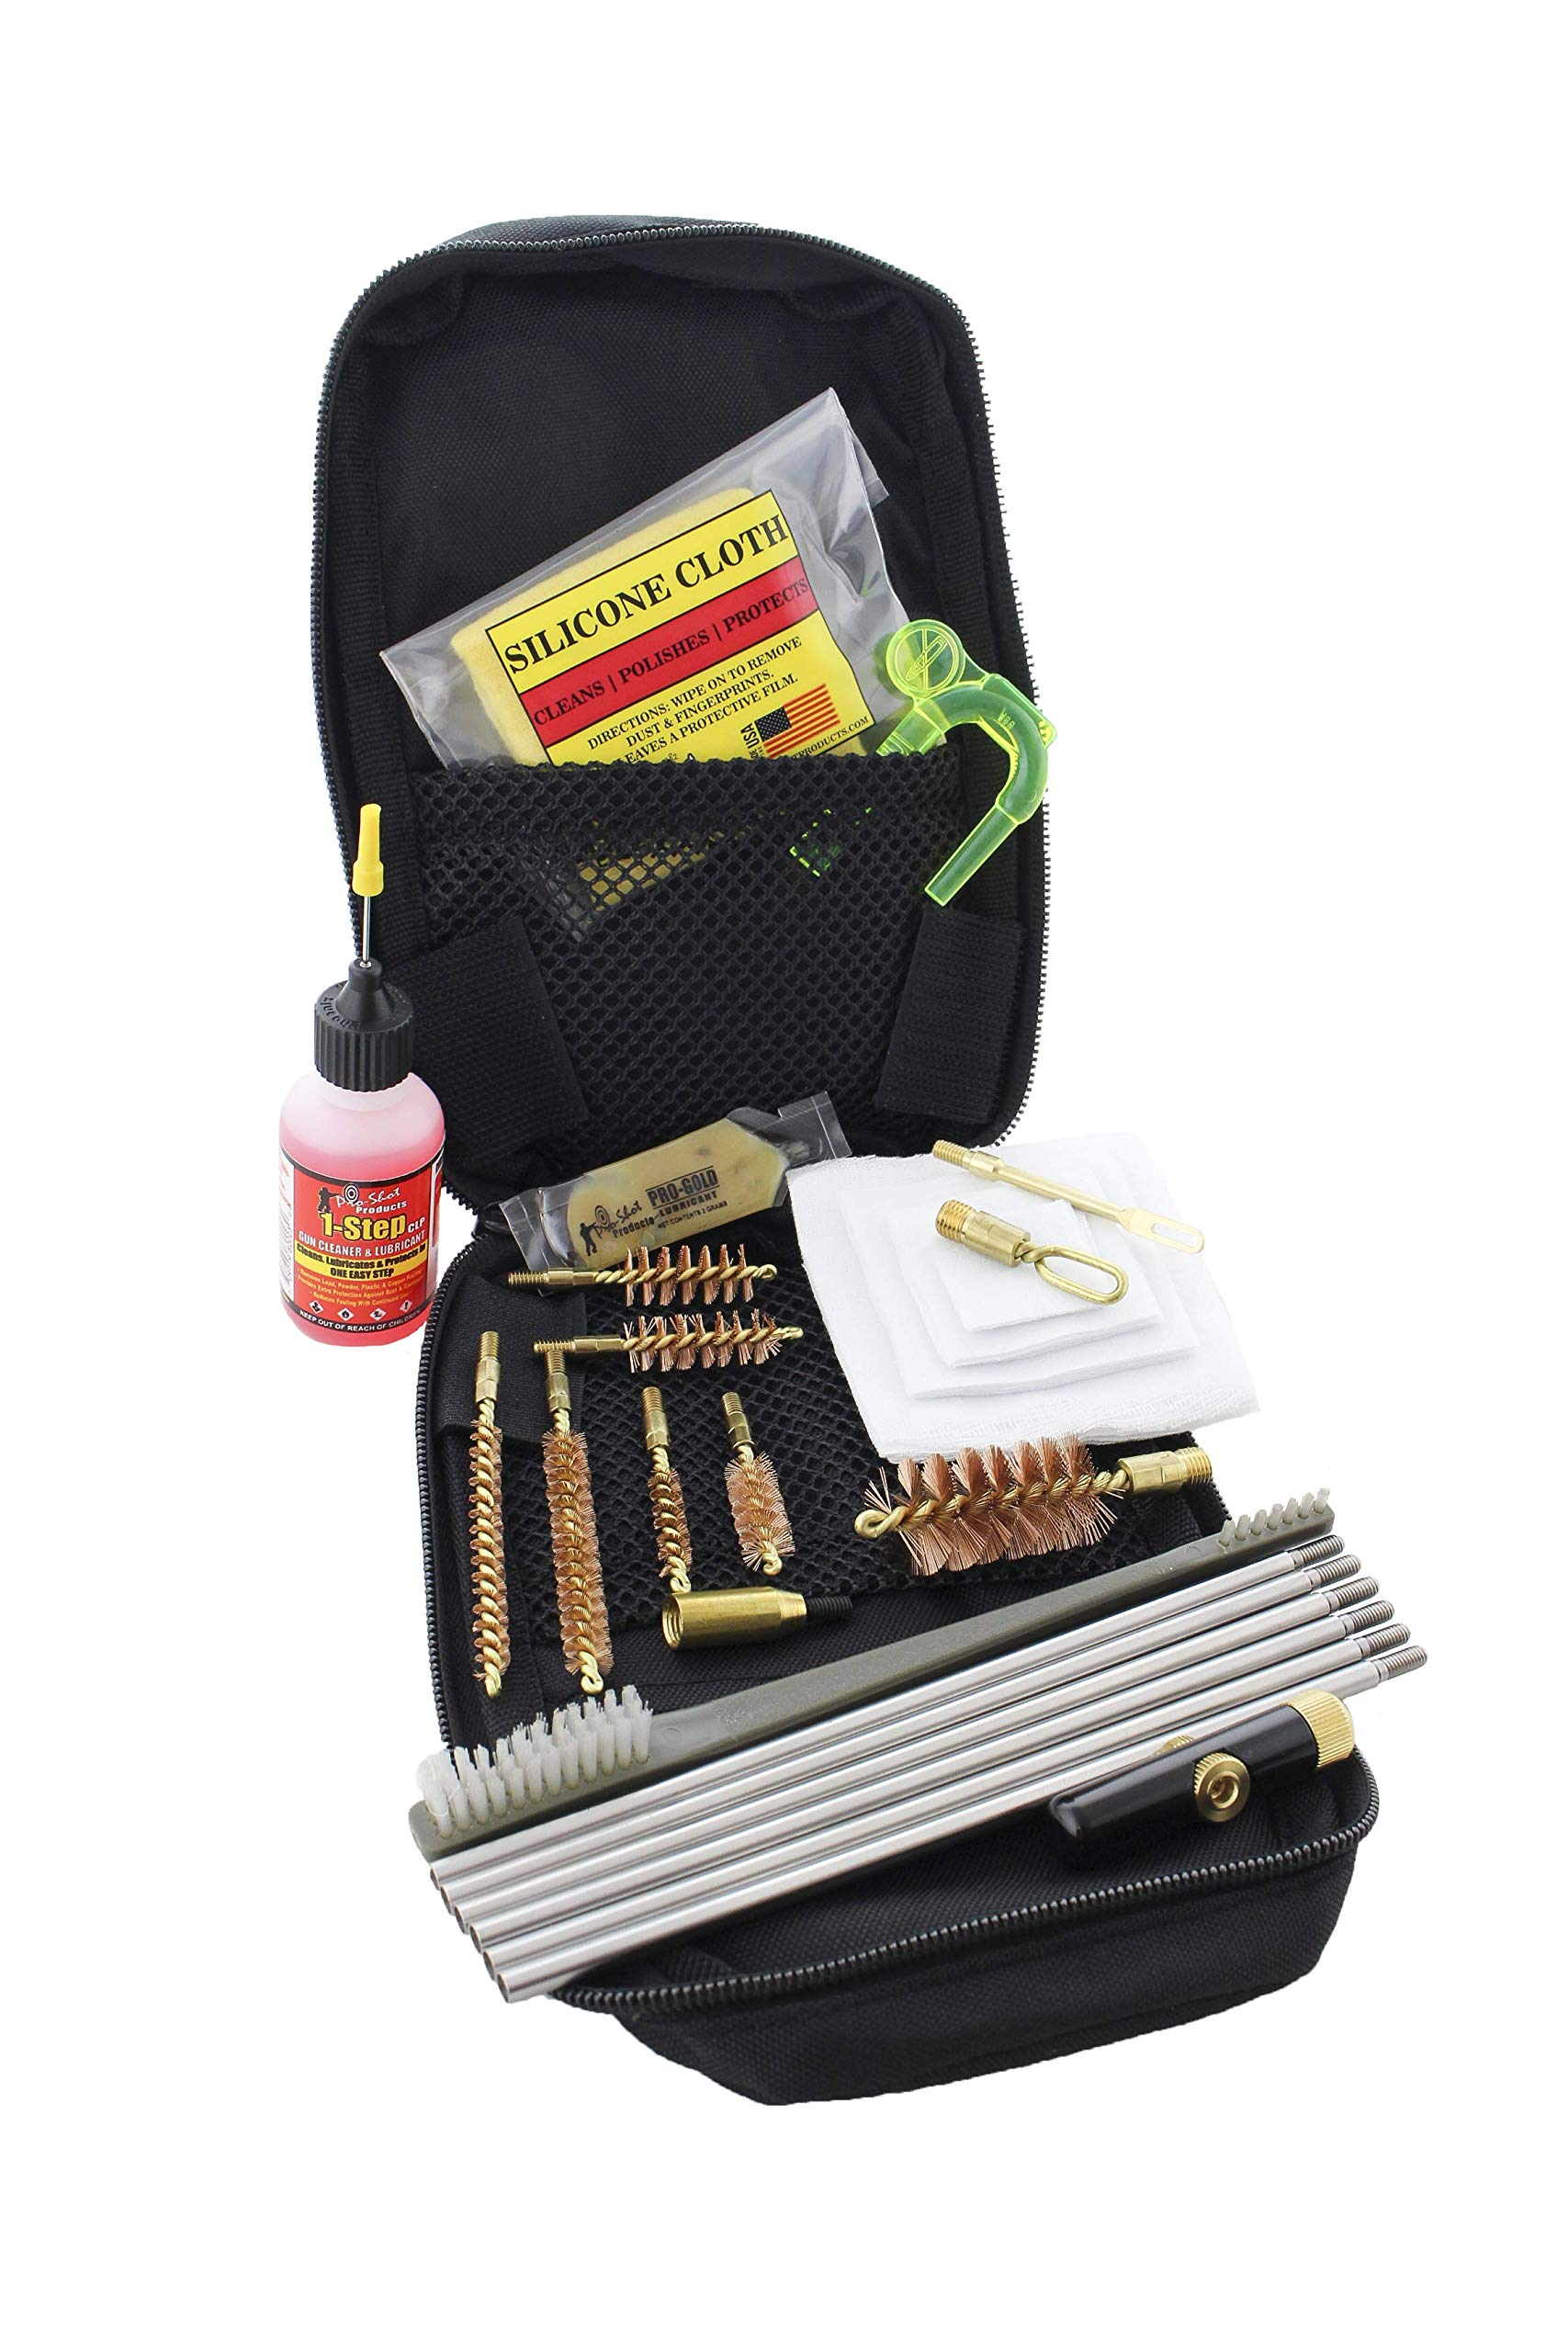 Pro Shot Tactical Universal .22-12-Gauge Cleaning Kit